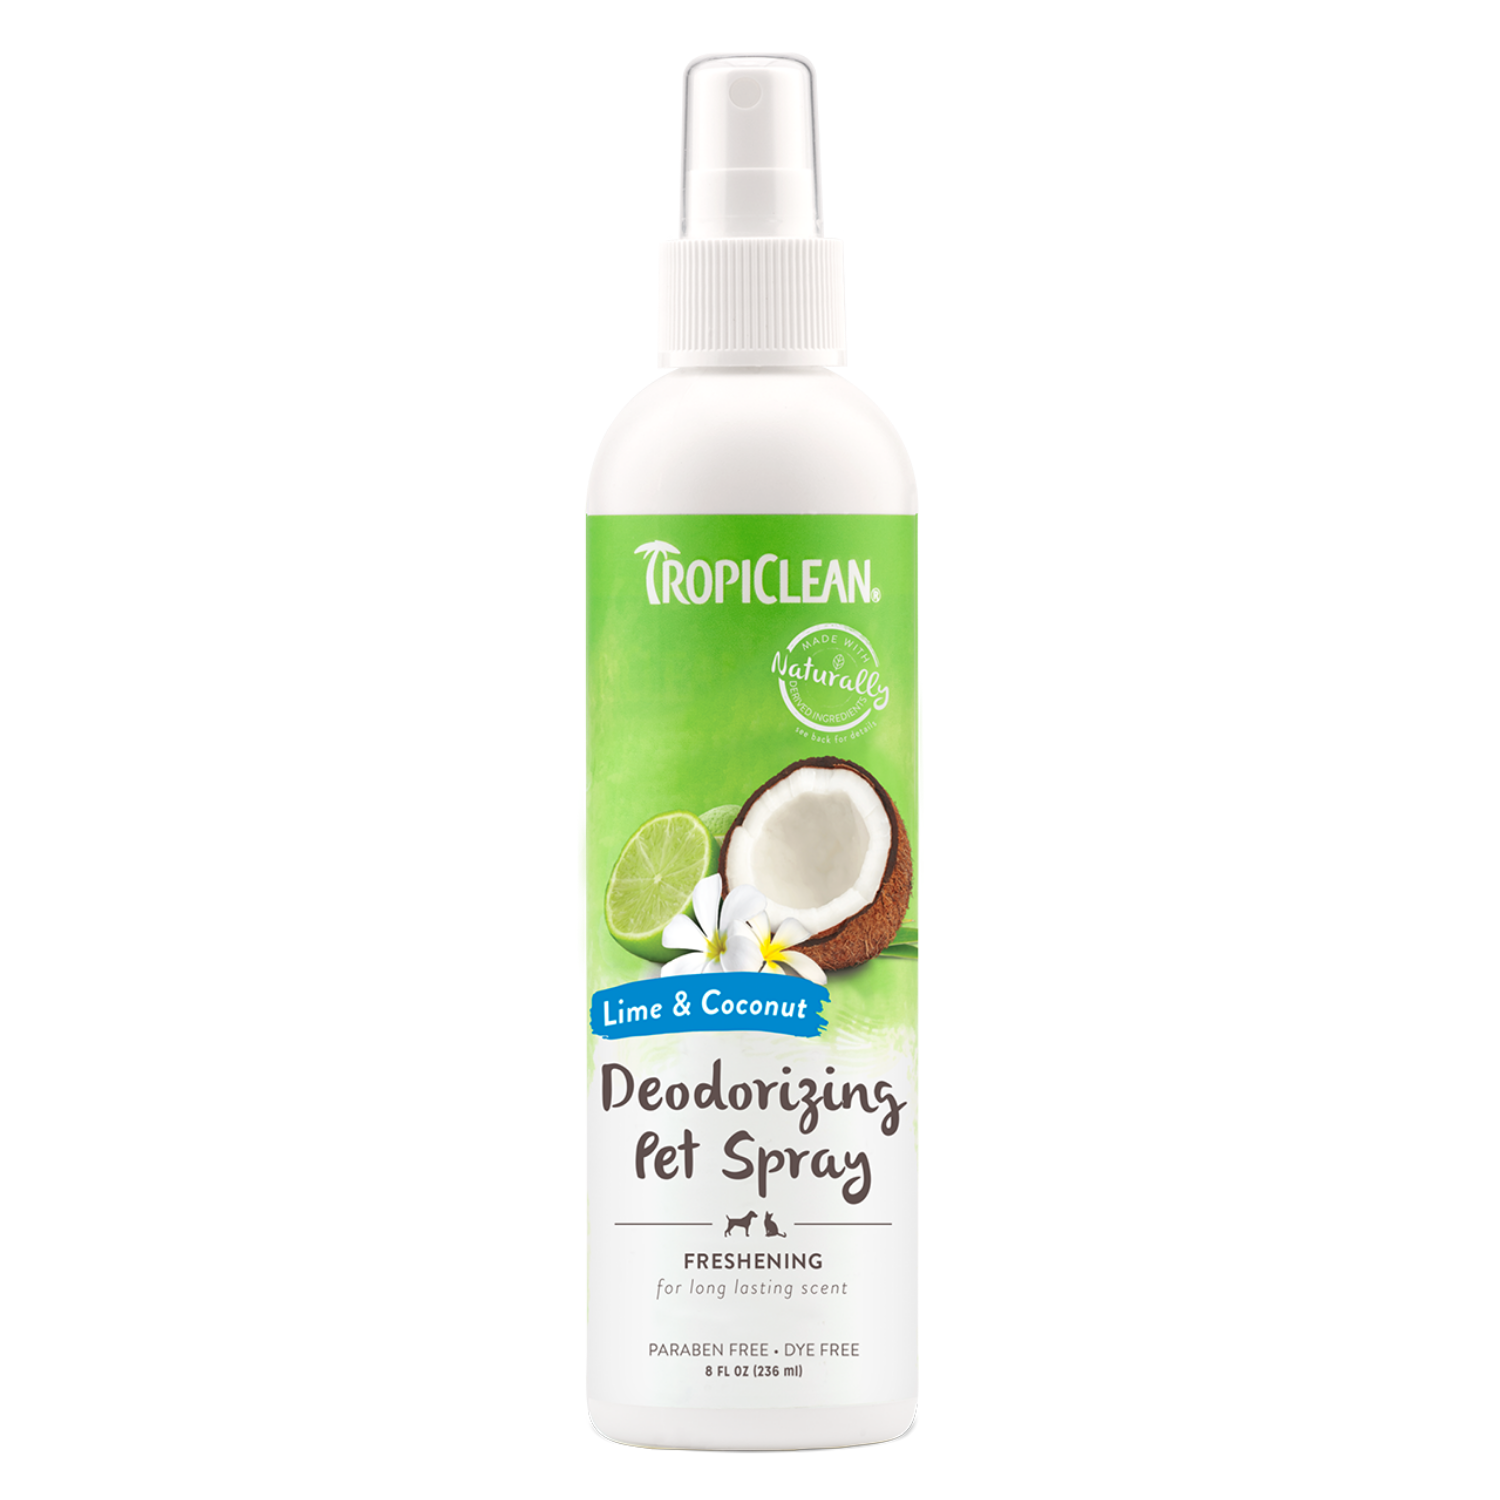 Tropiclean Lime & Coconut Deodorizing Pet Spray - 236ml